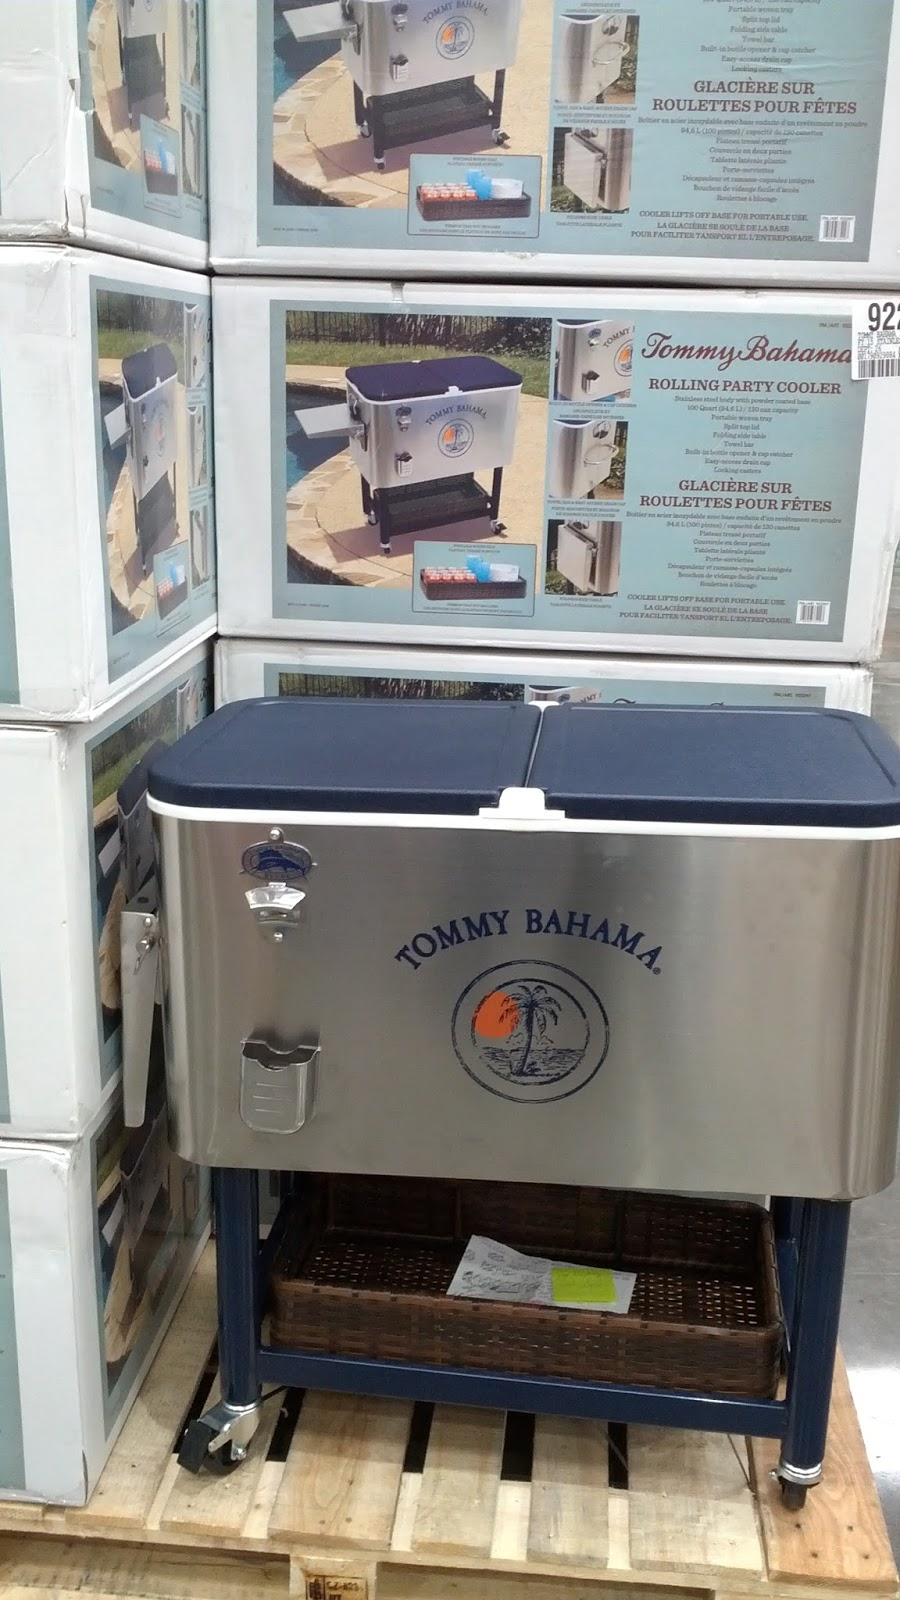 Tommy Bahama Roller Cooler For Cold Beer And Sodas